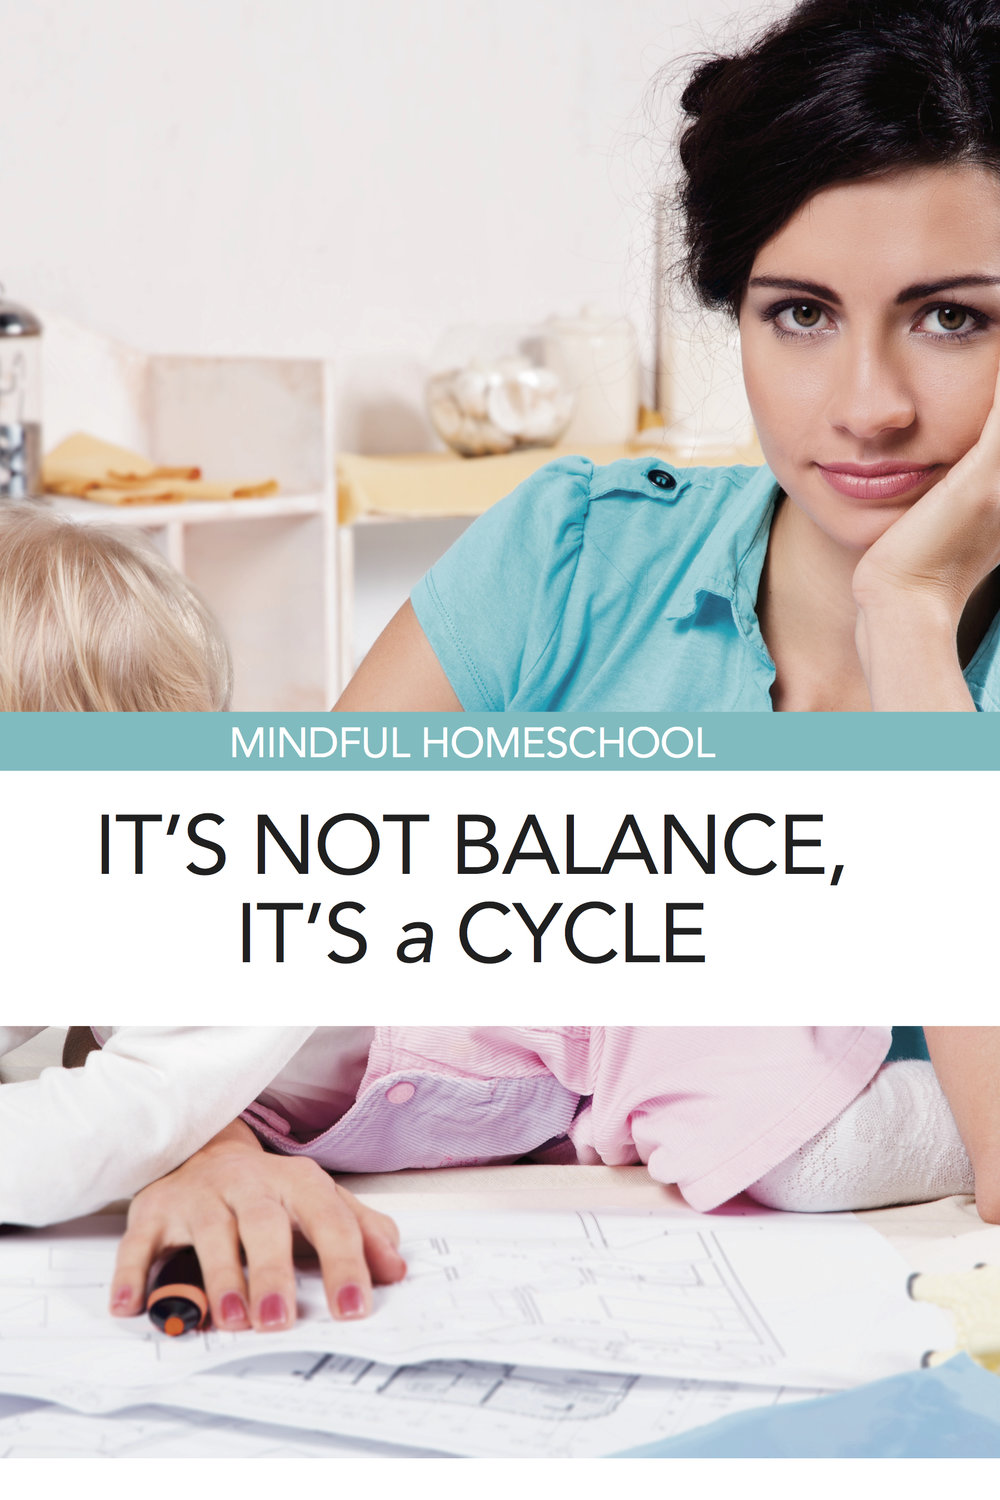 Mindful Homeschool: It's Not Balance, It's a Cycle